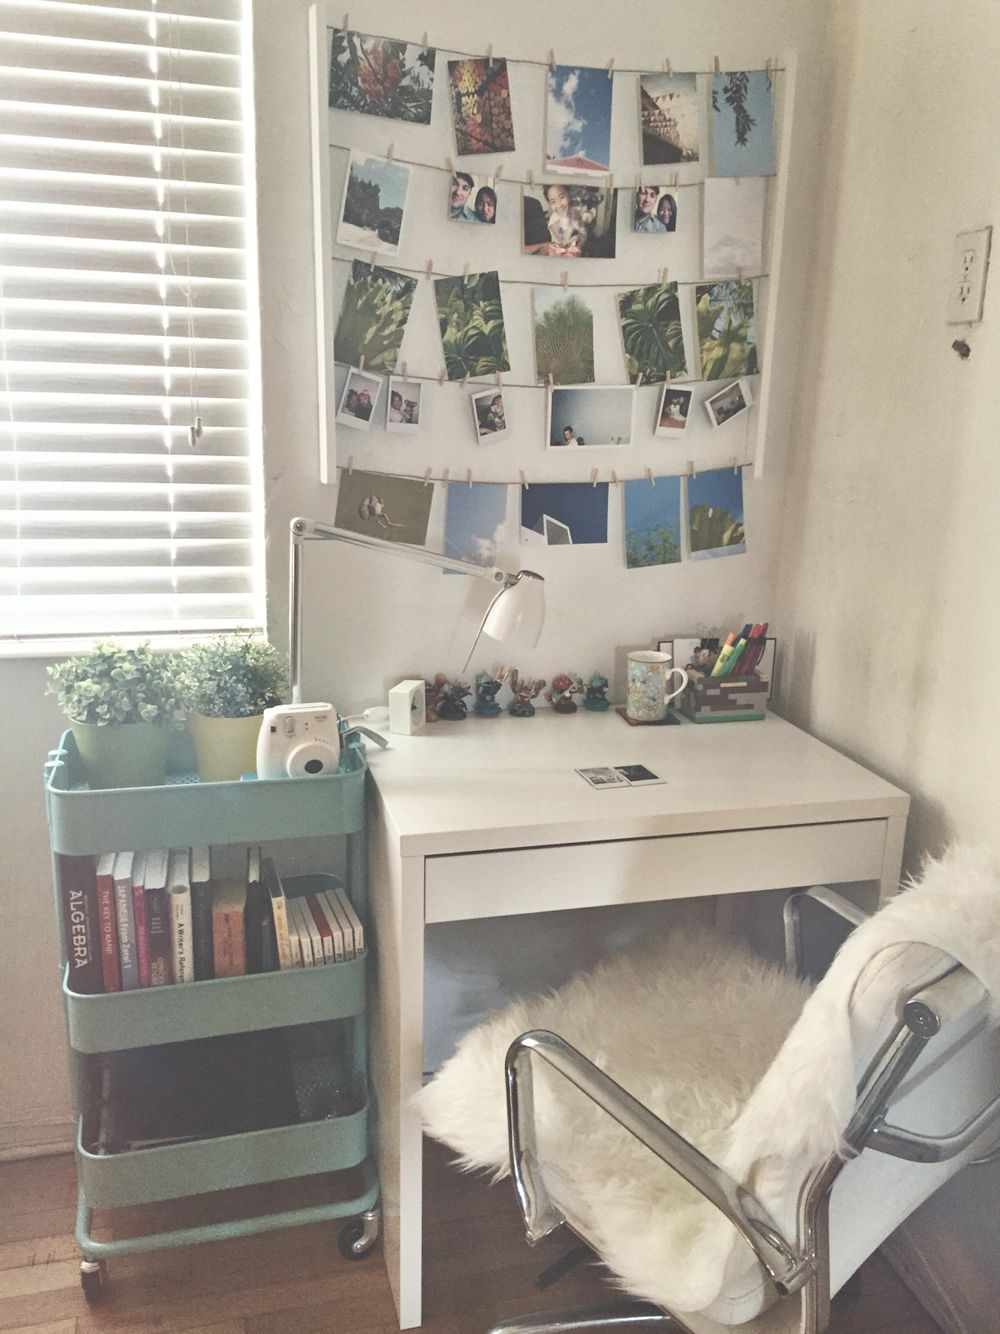 Charmant Cozy #ikea #raskogcart More Small Desk Bedroom, Dorm Room Desk, Ikea Small